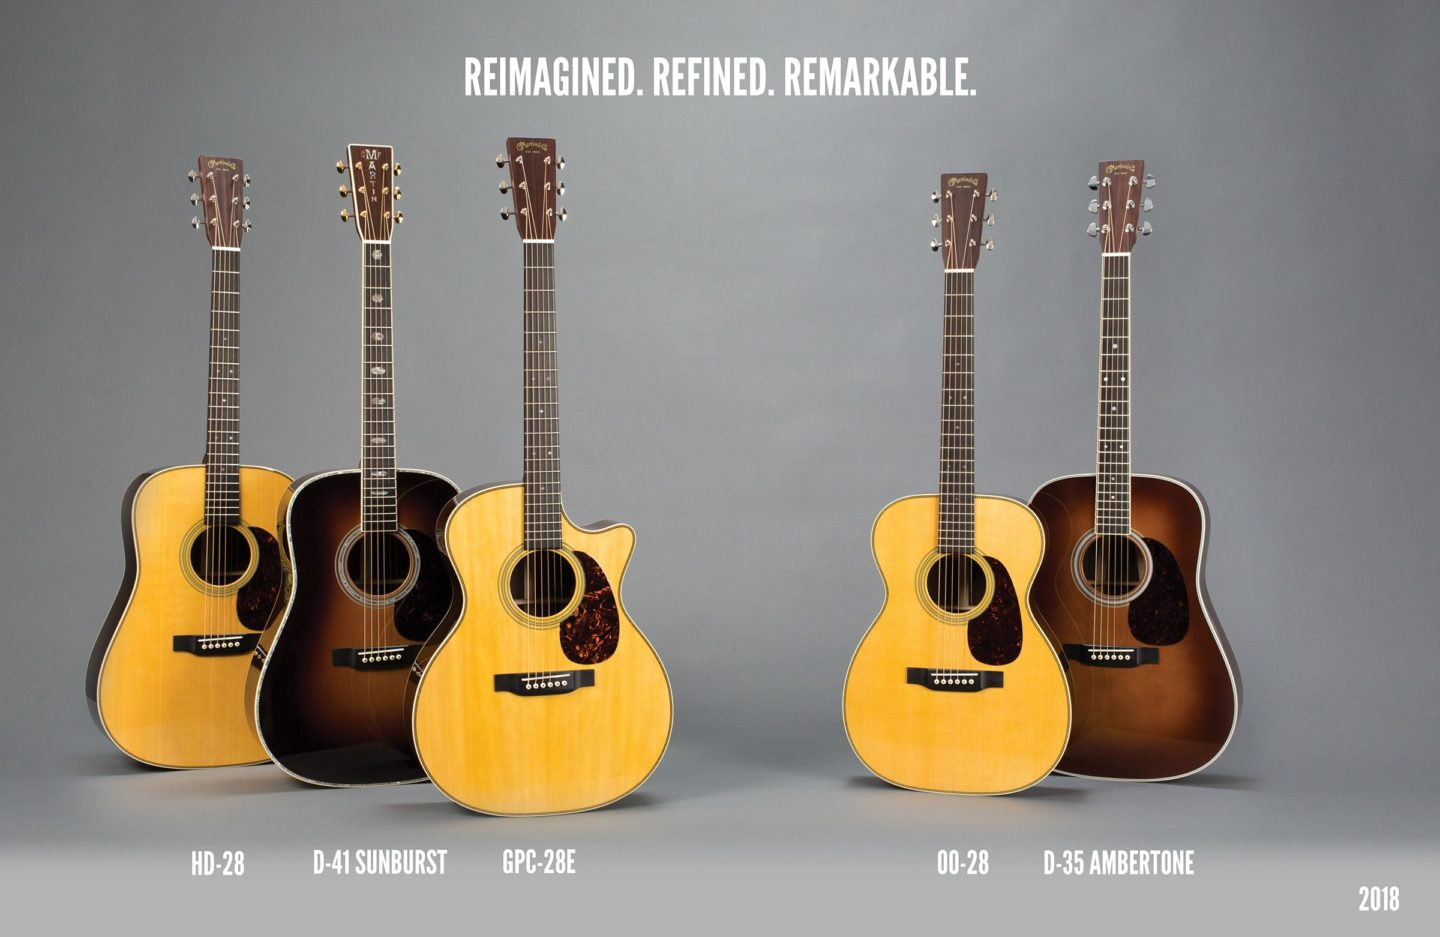 Martin Guitar to Introduce Reimagined Standard Series Guitars at 2018 Winter NAMM